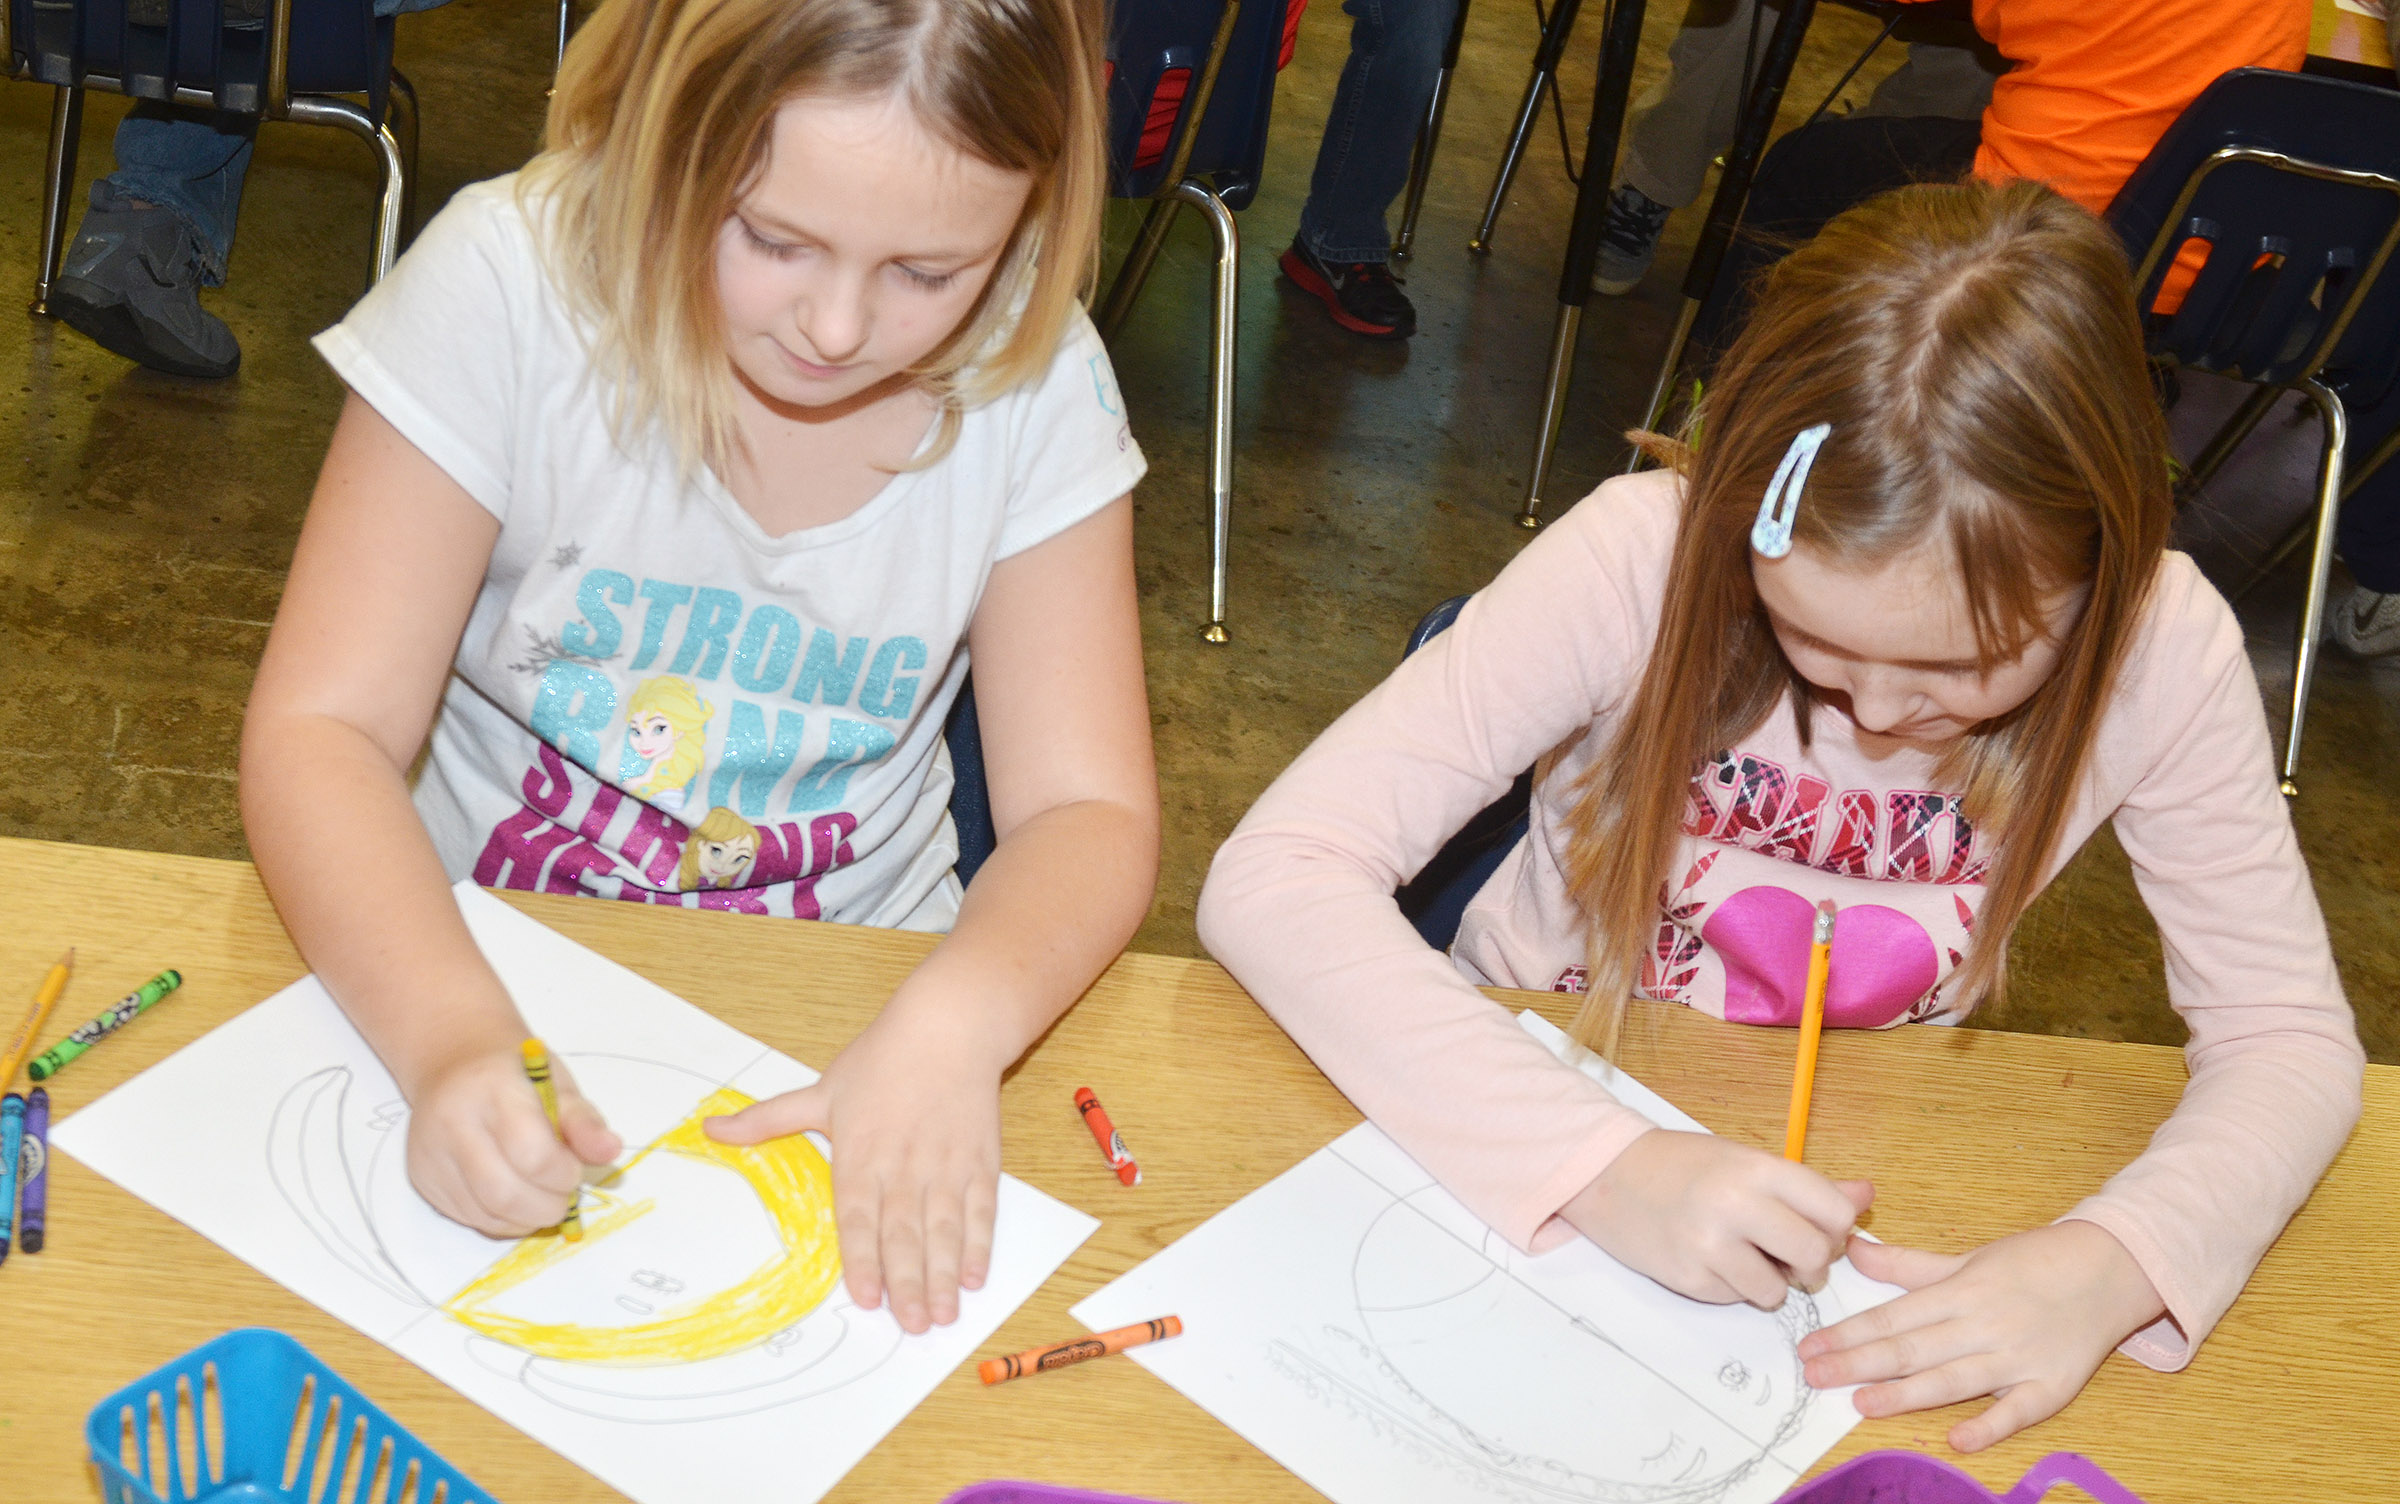 CES second-graders Allison Dean, at left, and Gracie Murphy color their warm and cool color faces.